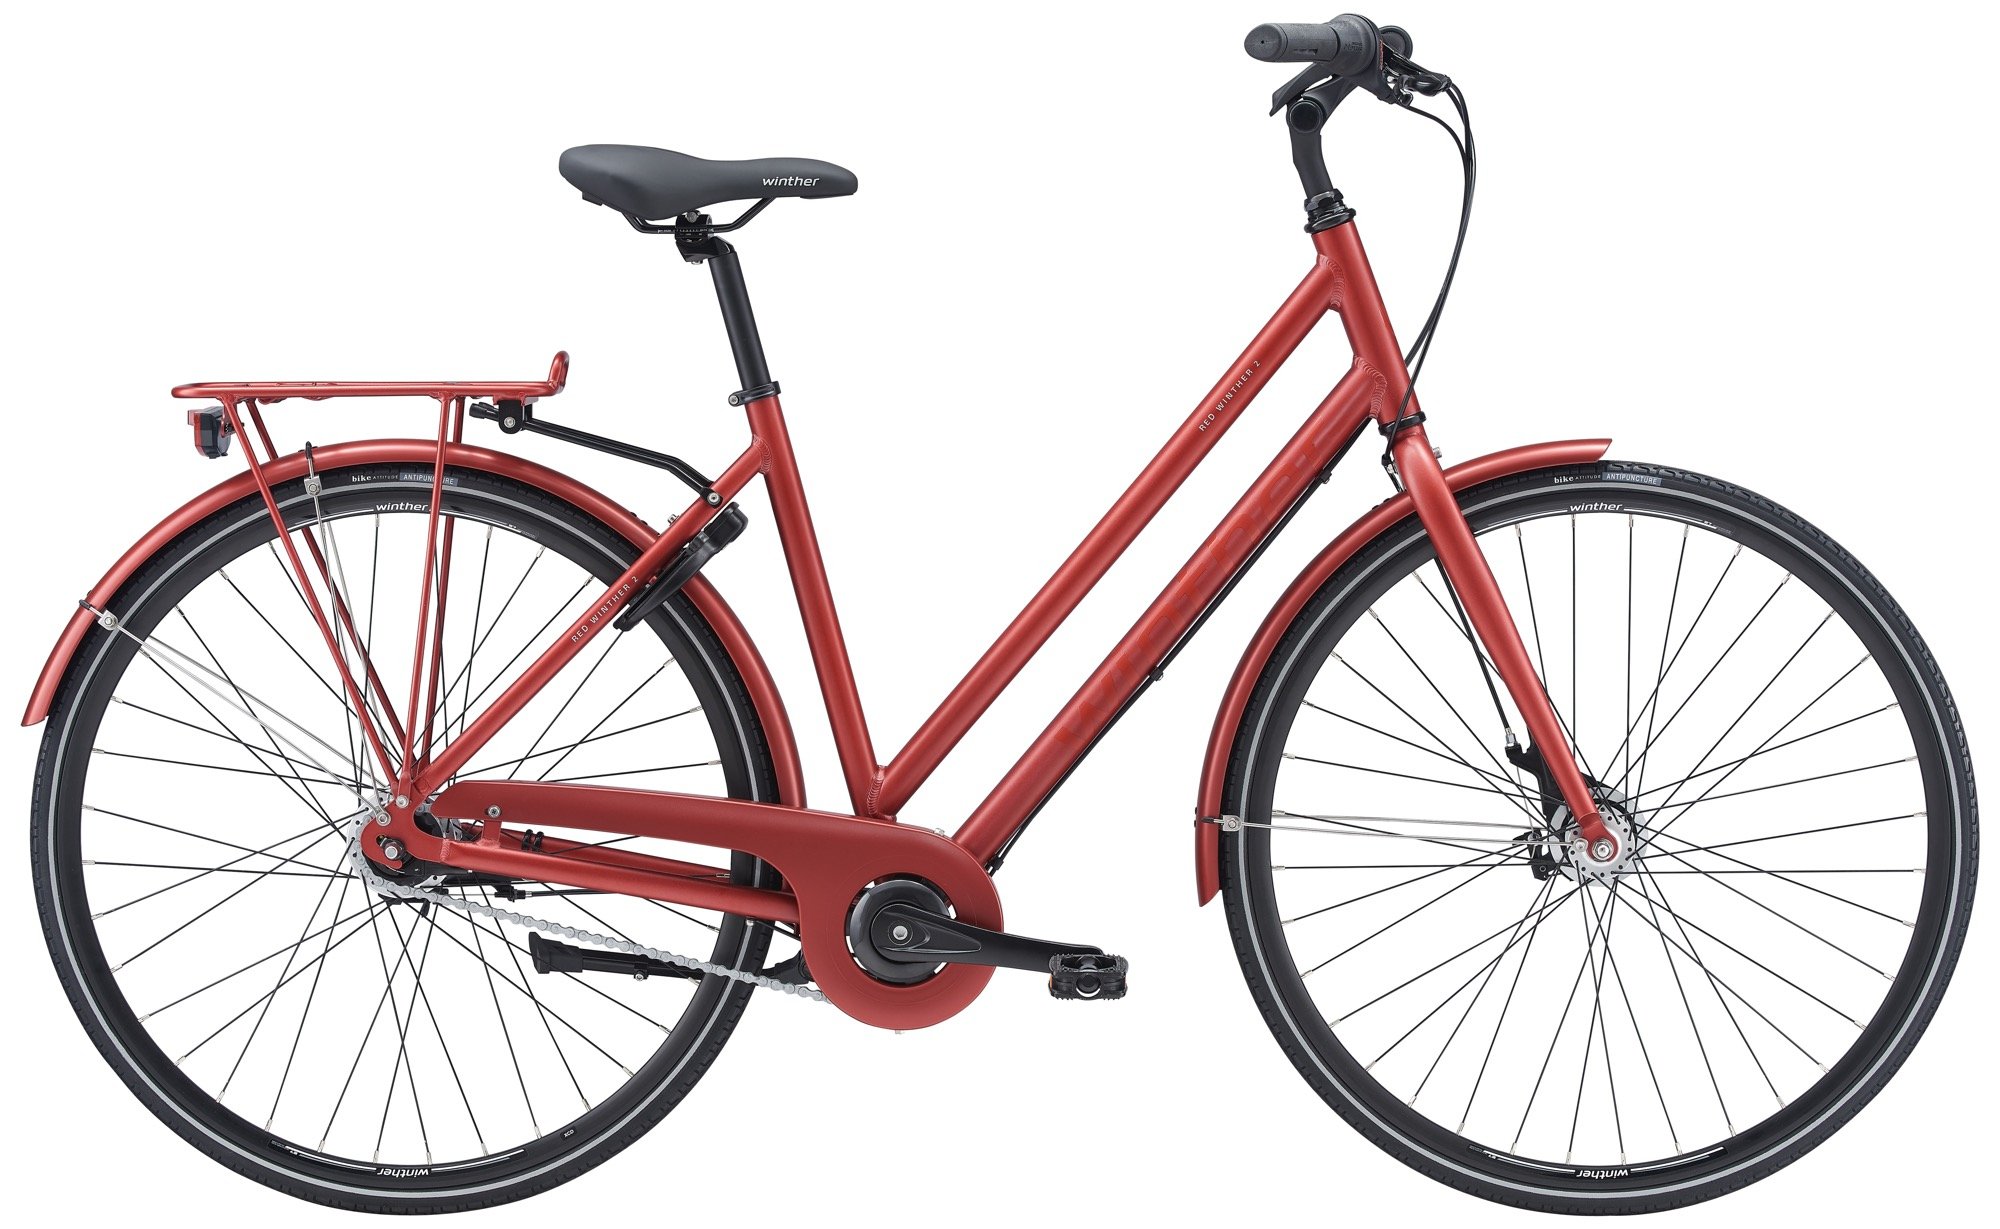 Pedalatleten Winther Red 2 Dame 7 Gear Rød - 2020 Cykler||Winther Cykler